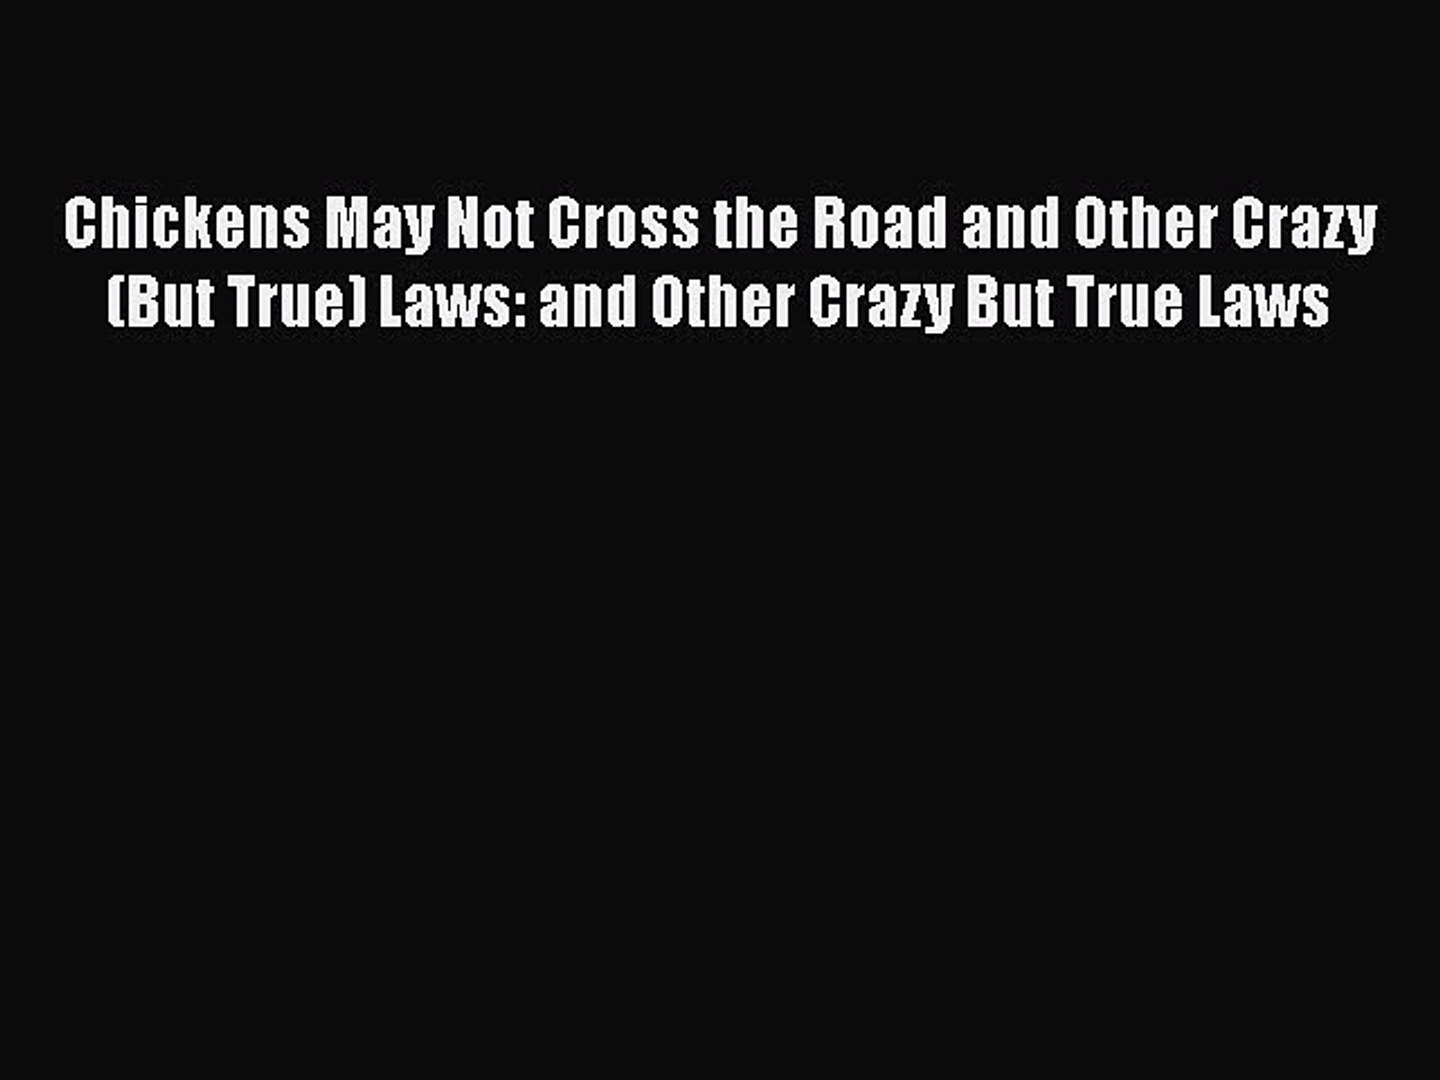 PDF Chickens May Not Cross the Road and Other Crazy(But True) Laws: and Other Crazy But True